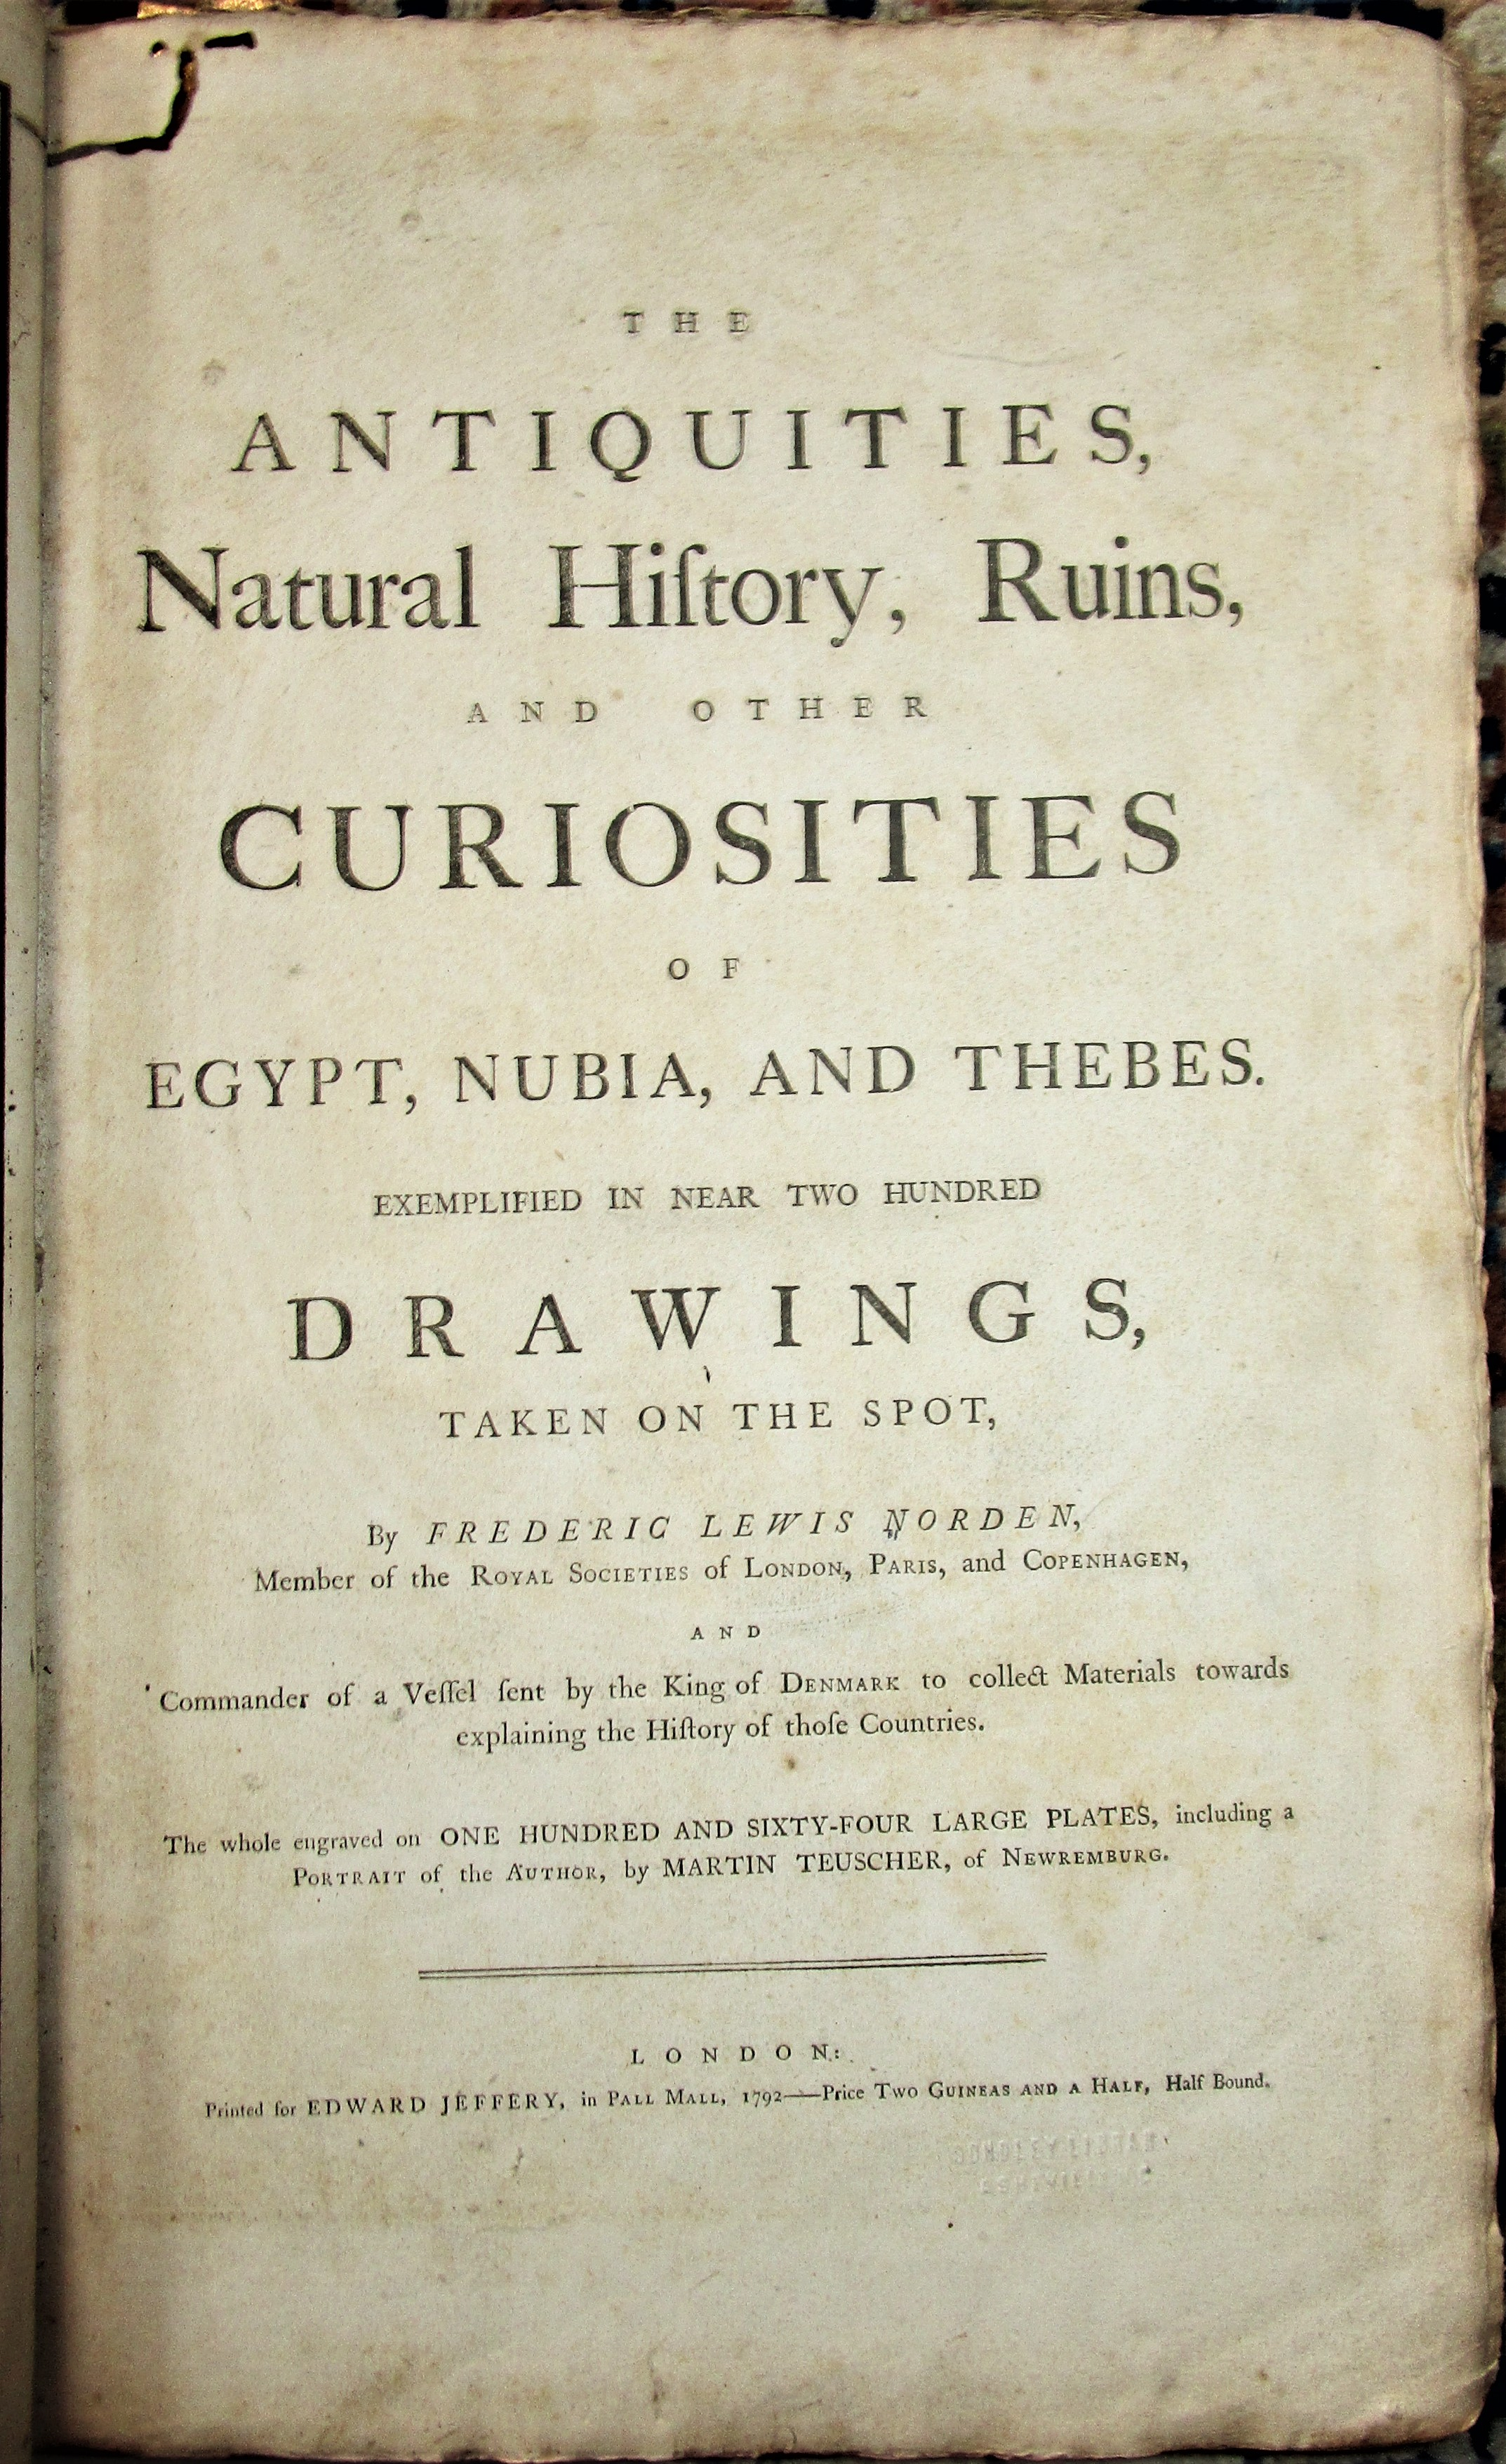 ANTIQUITIES, NATURAL HISTORY, RUINS...OF EGYPT, NUBIA, AND THEBES, by Frederic Lewis Norden - 1792 [1st Ed]